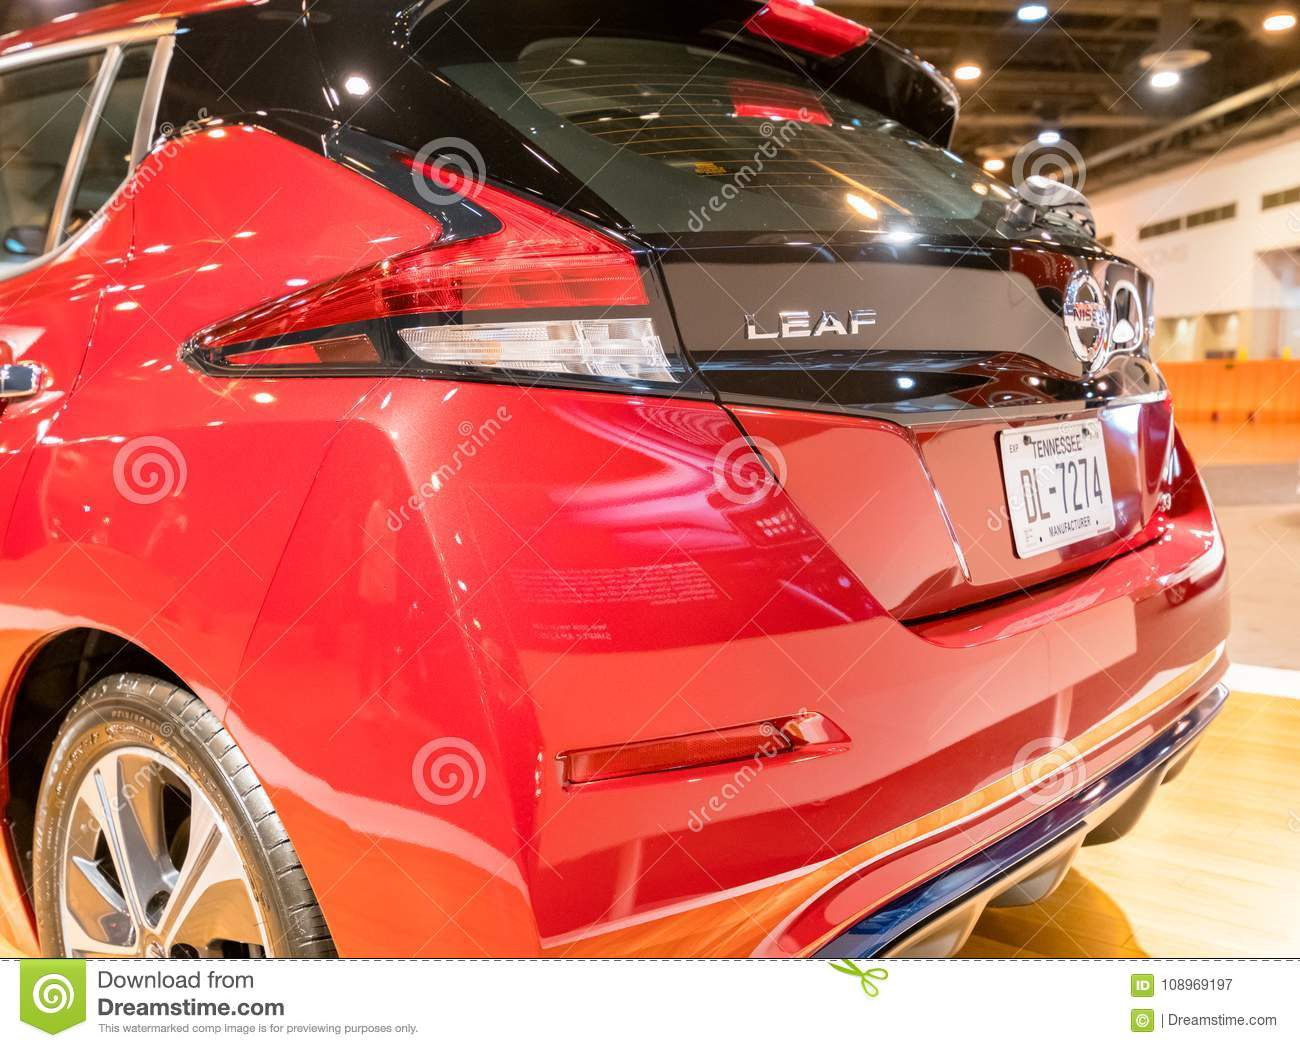 New Nissan LEAF Electric Car Editorial Photography Image Of - Houston car show 2018